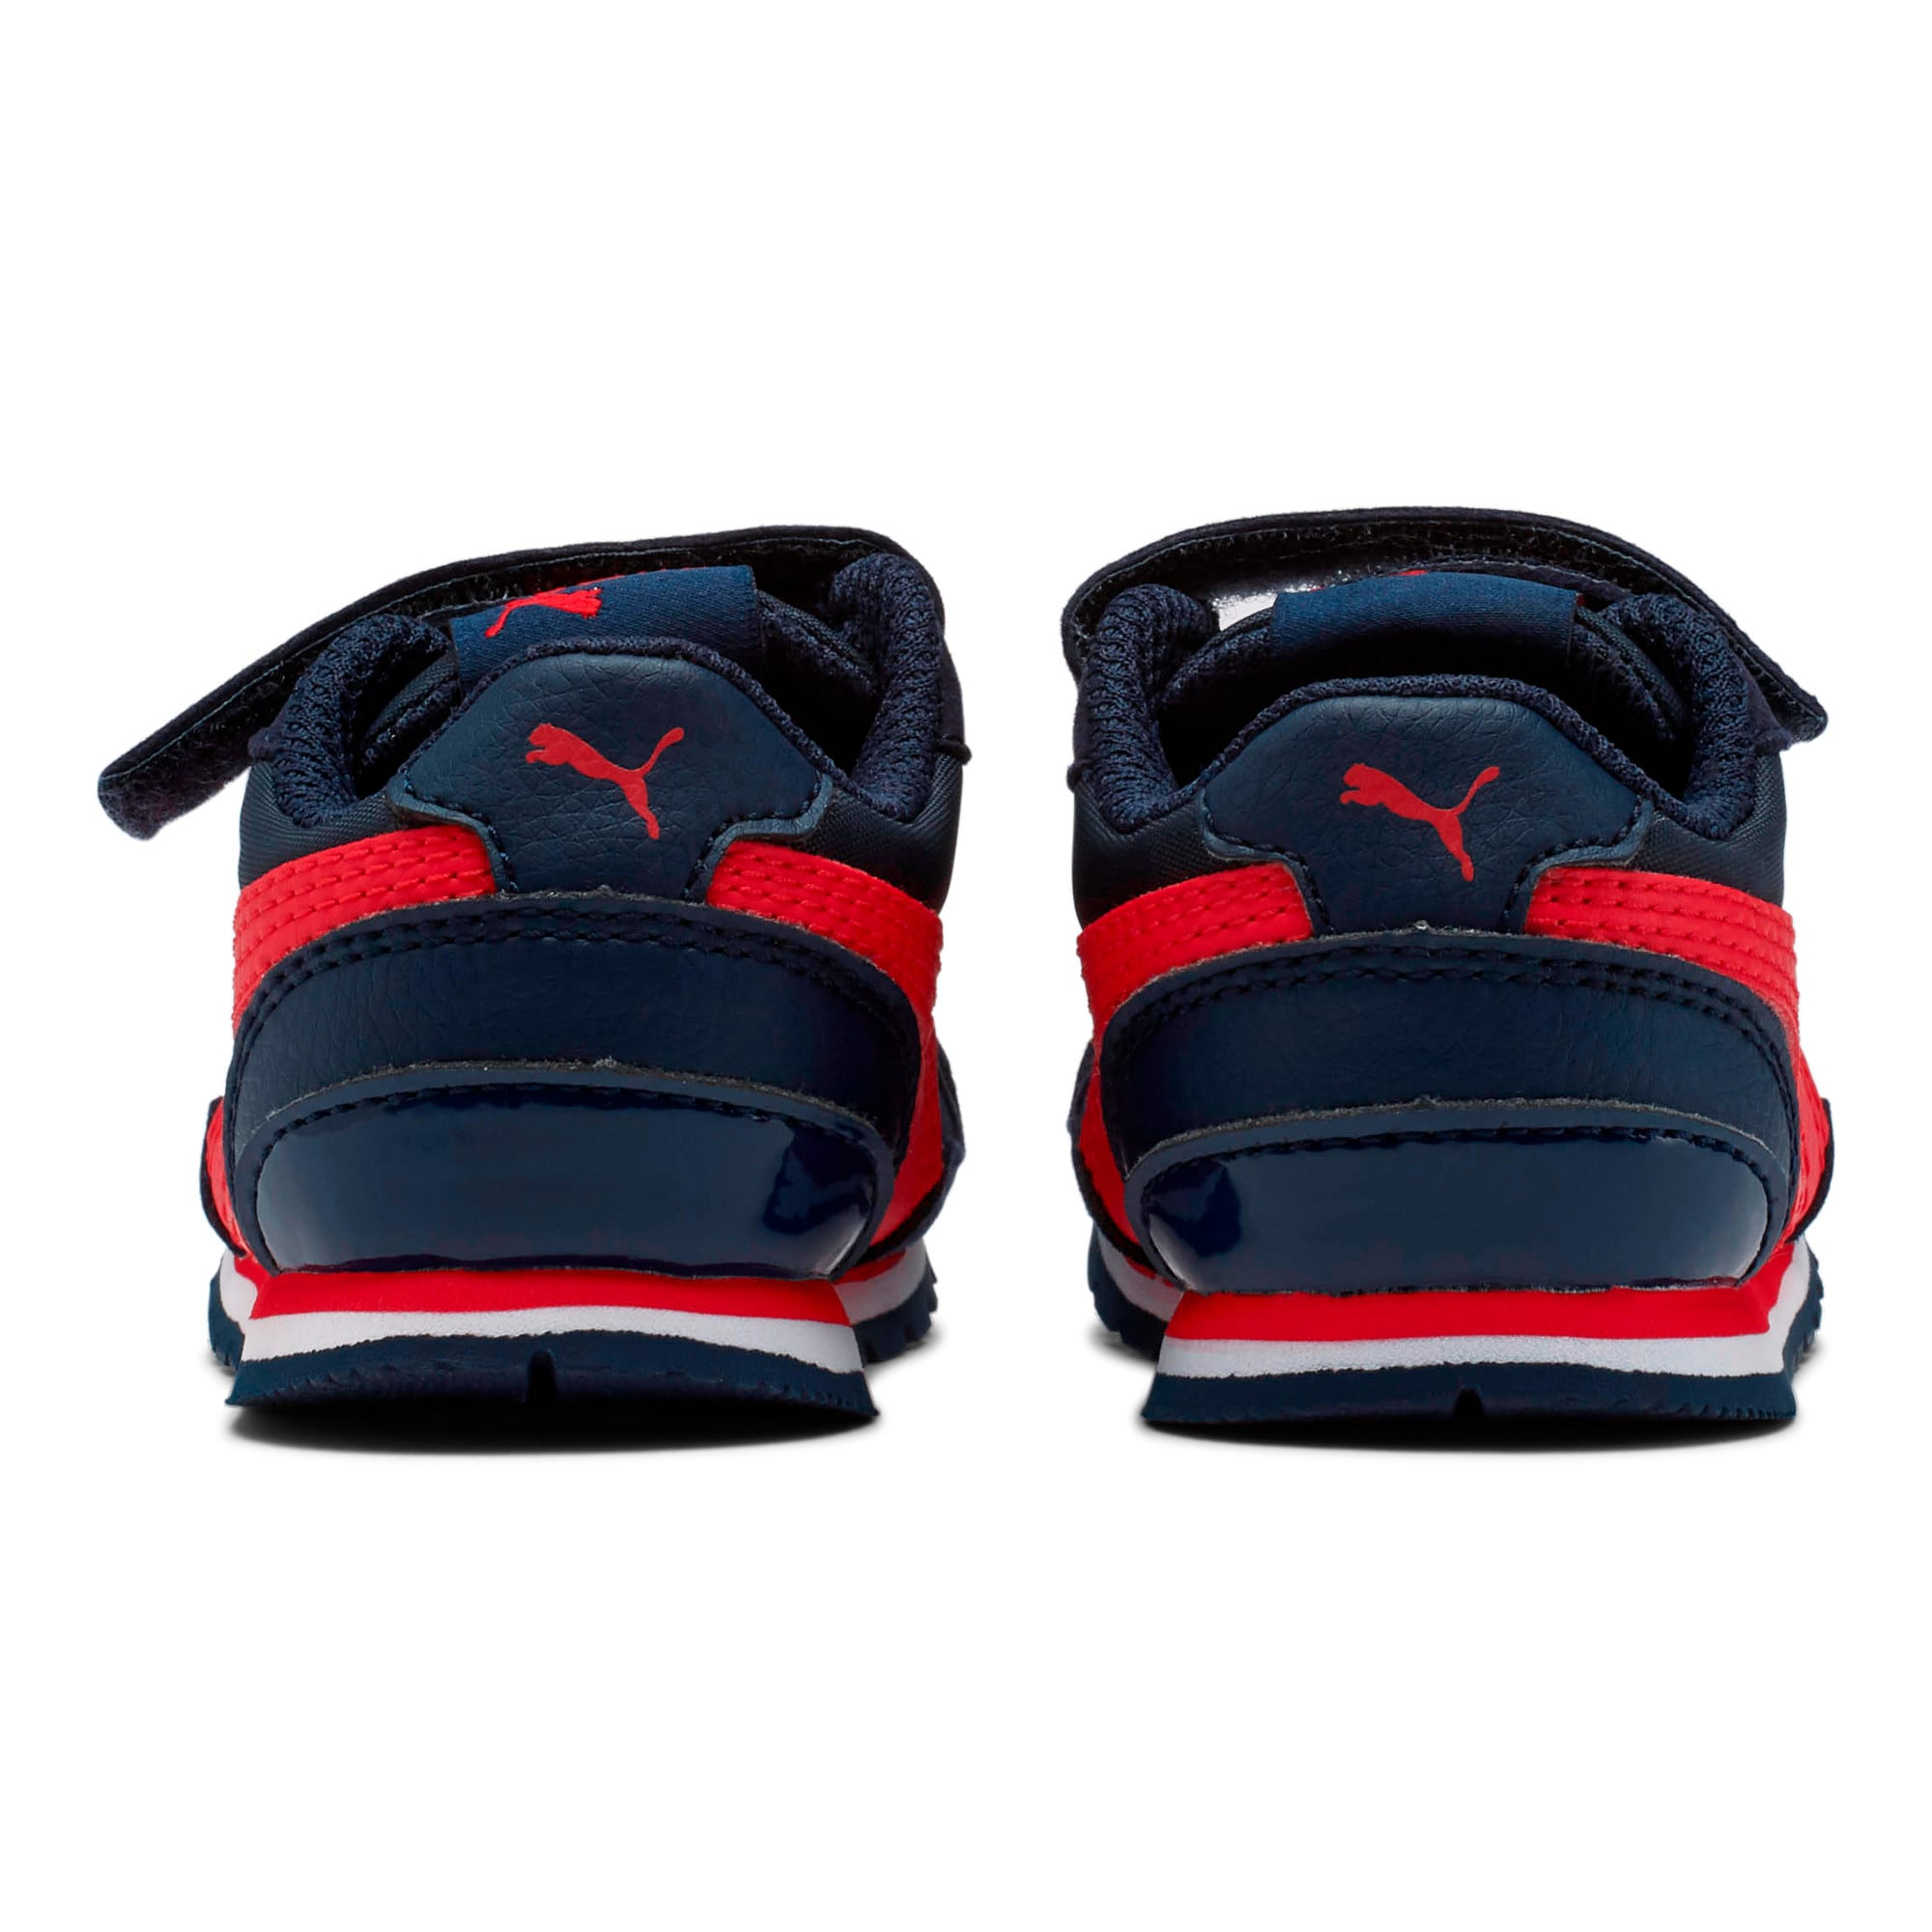 Thumbnail 4 of ST Runner V2 V Toddler Shoes, Peacoat-Ribbon Red, medium